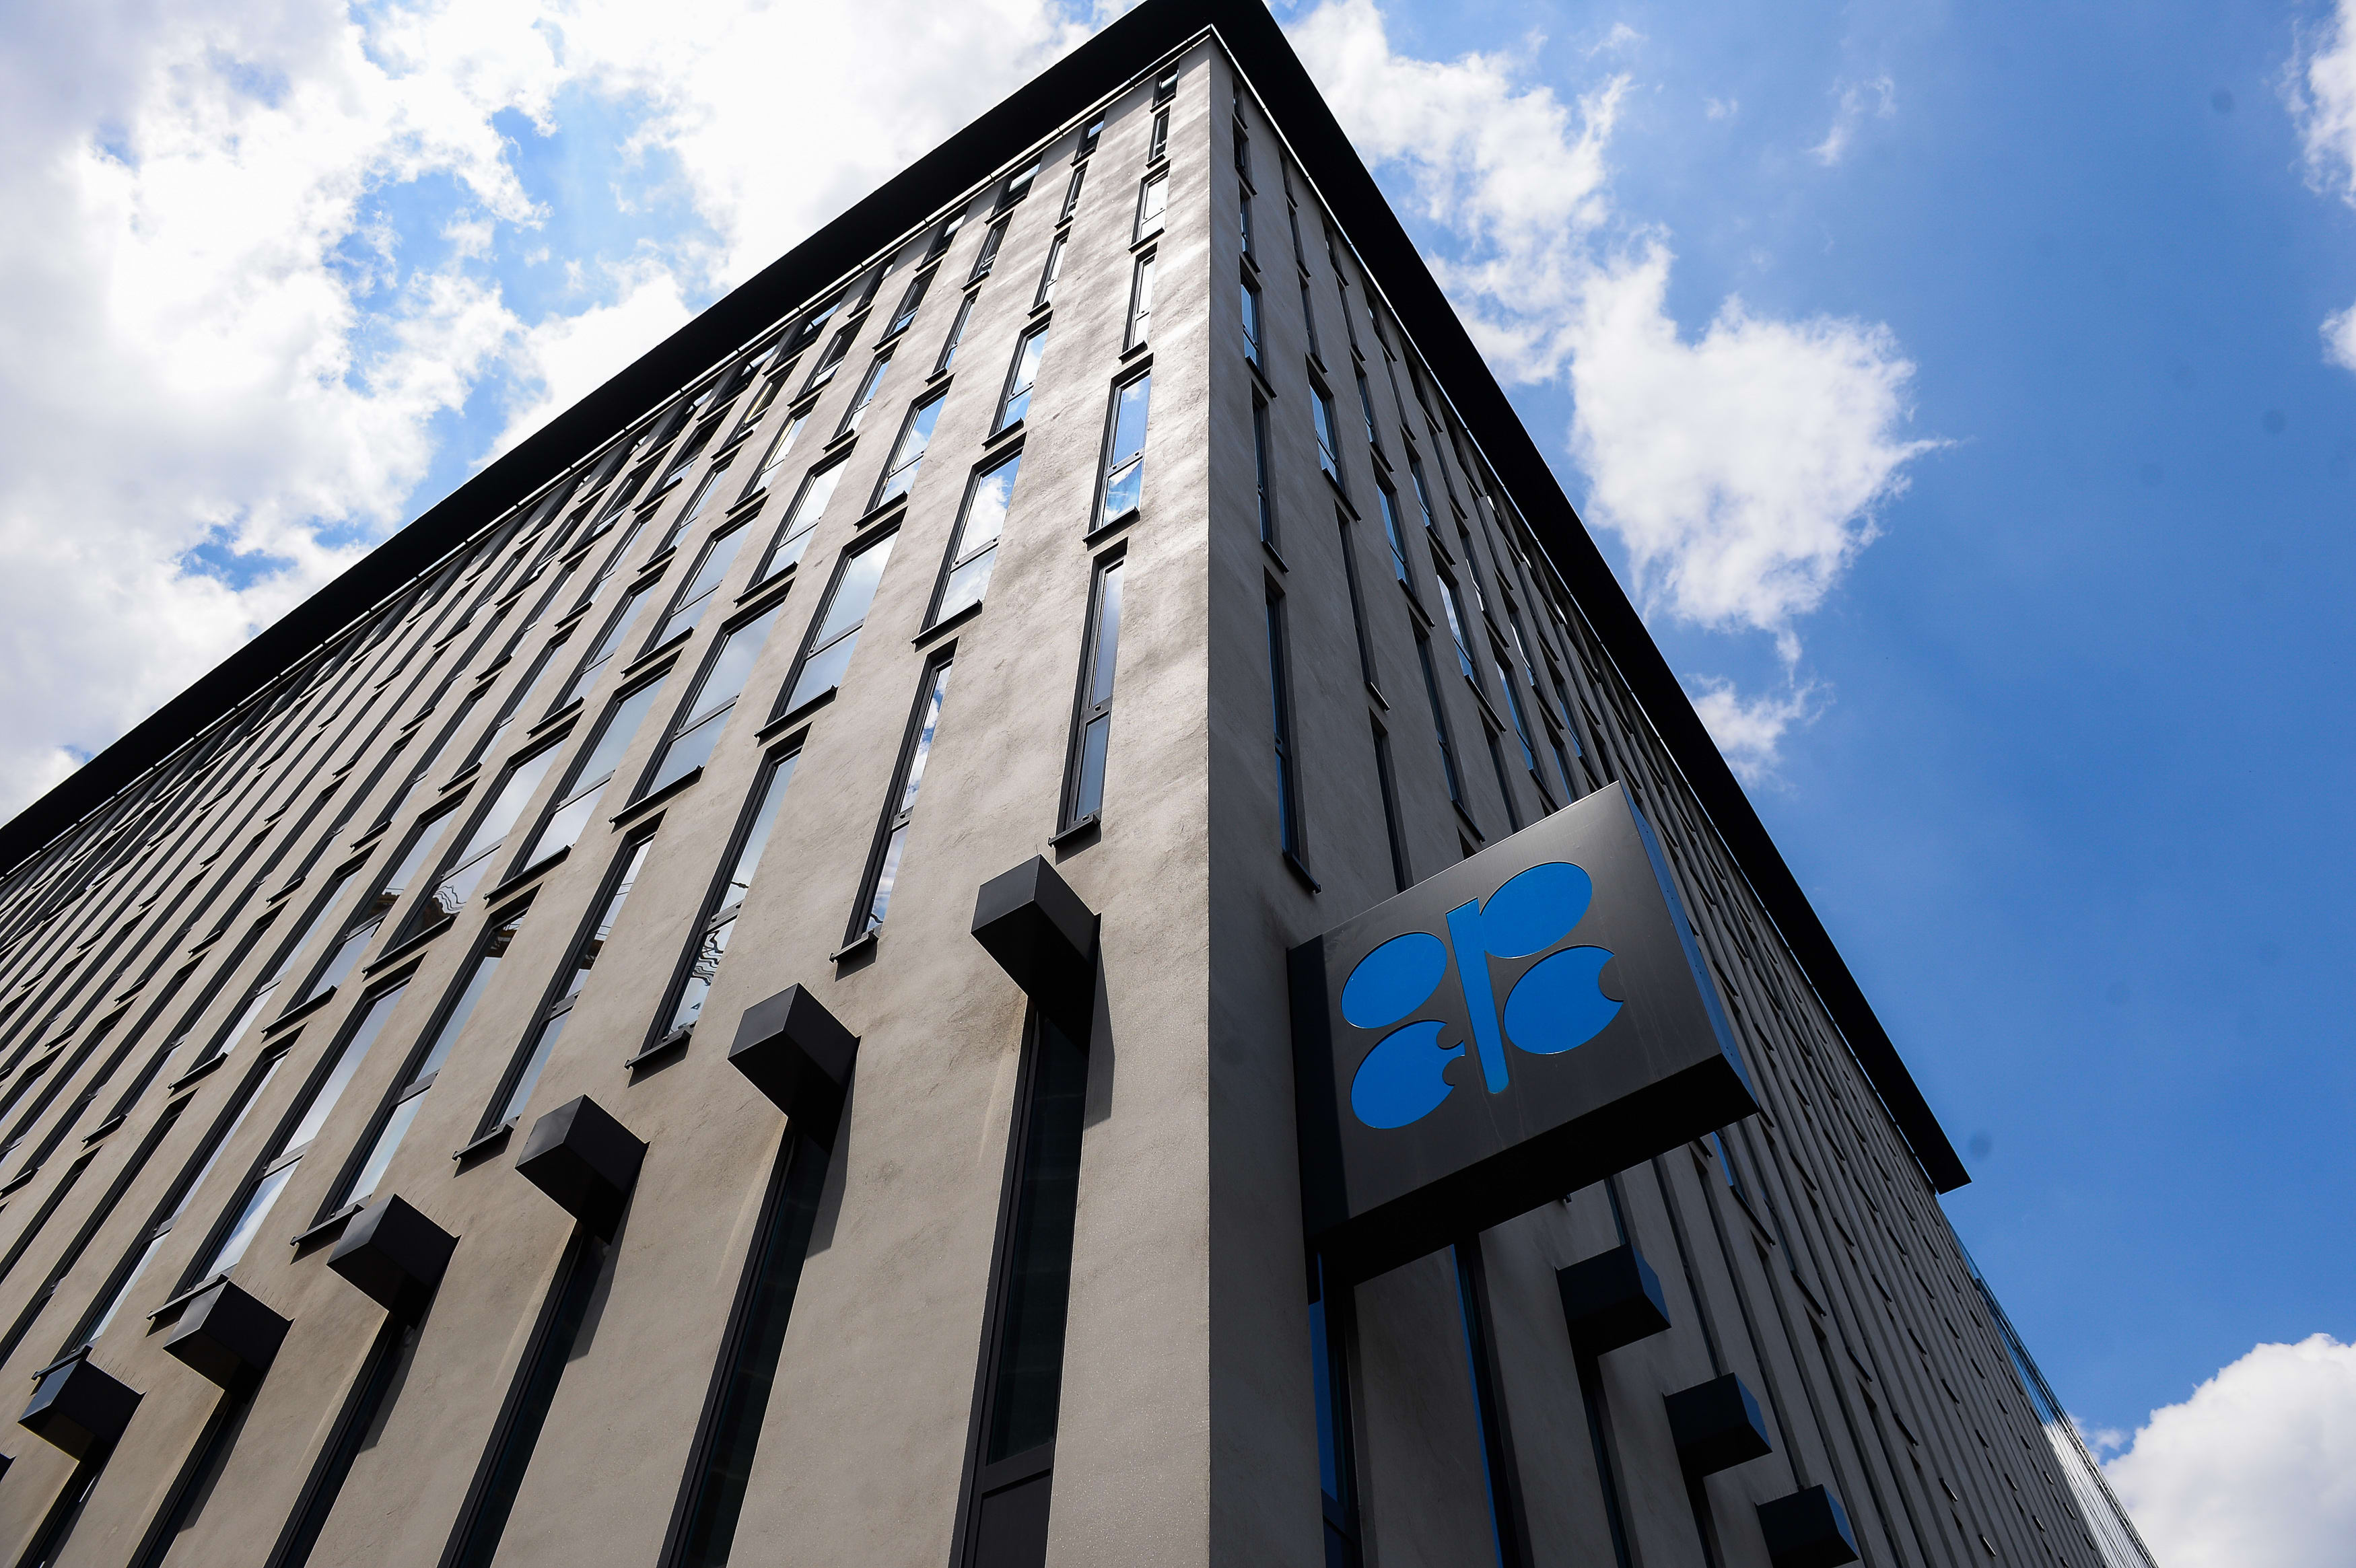 OPEC meeting to decide on historic output cuts